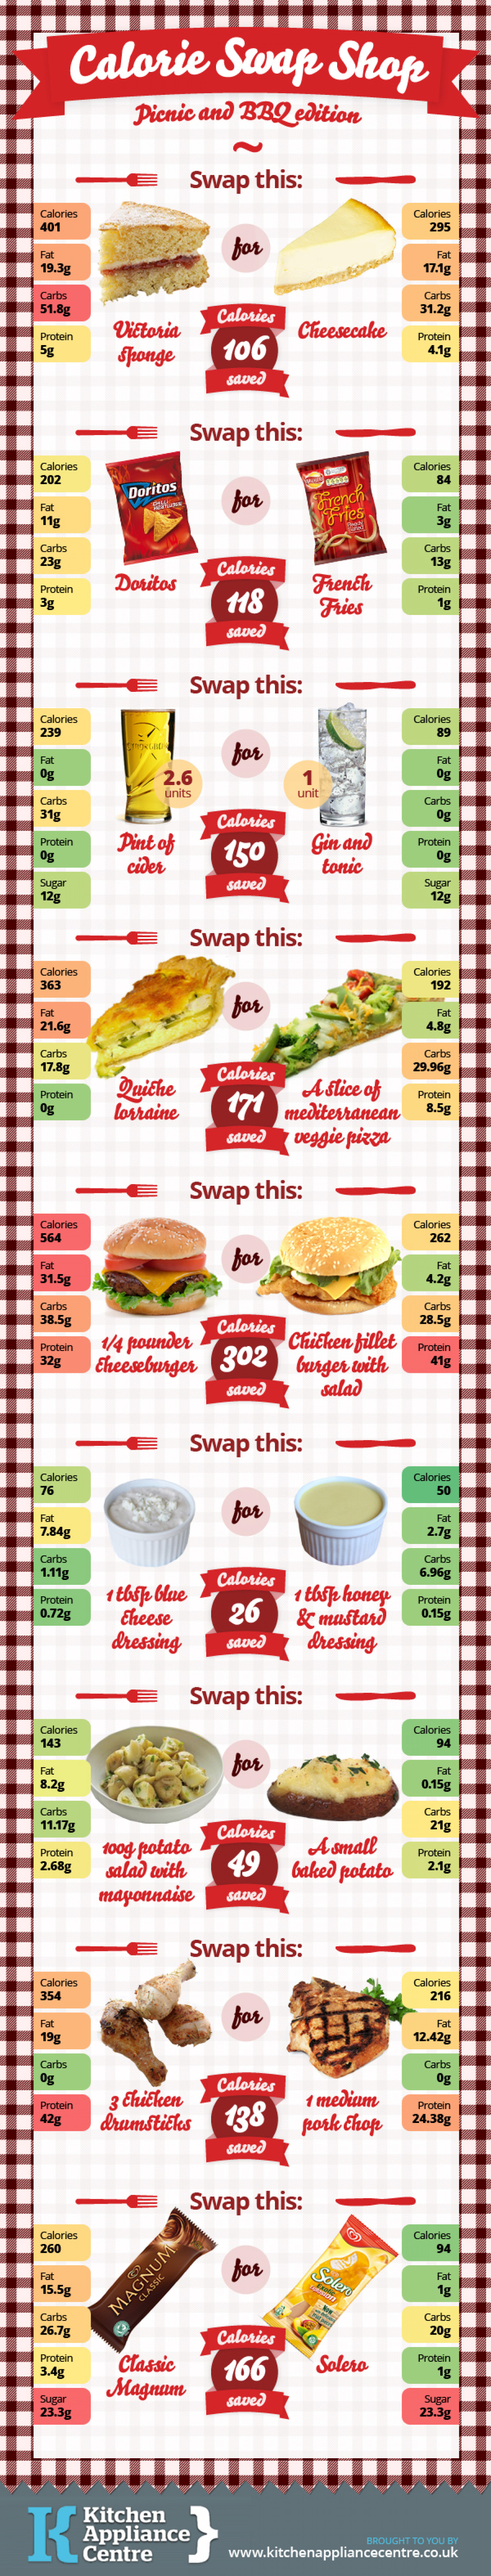 Swap This For That: Spring/Summer Edition Infographic